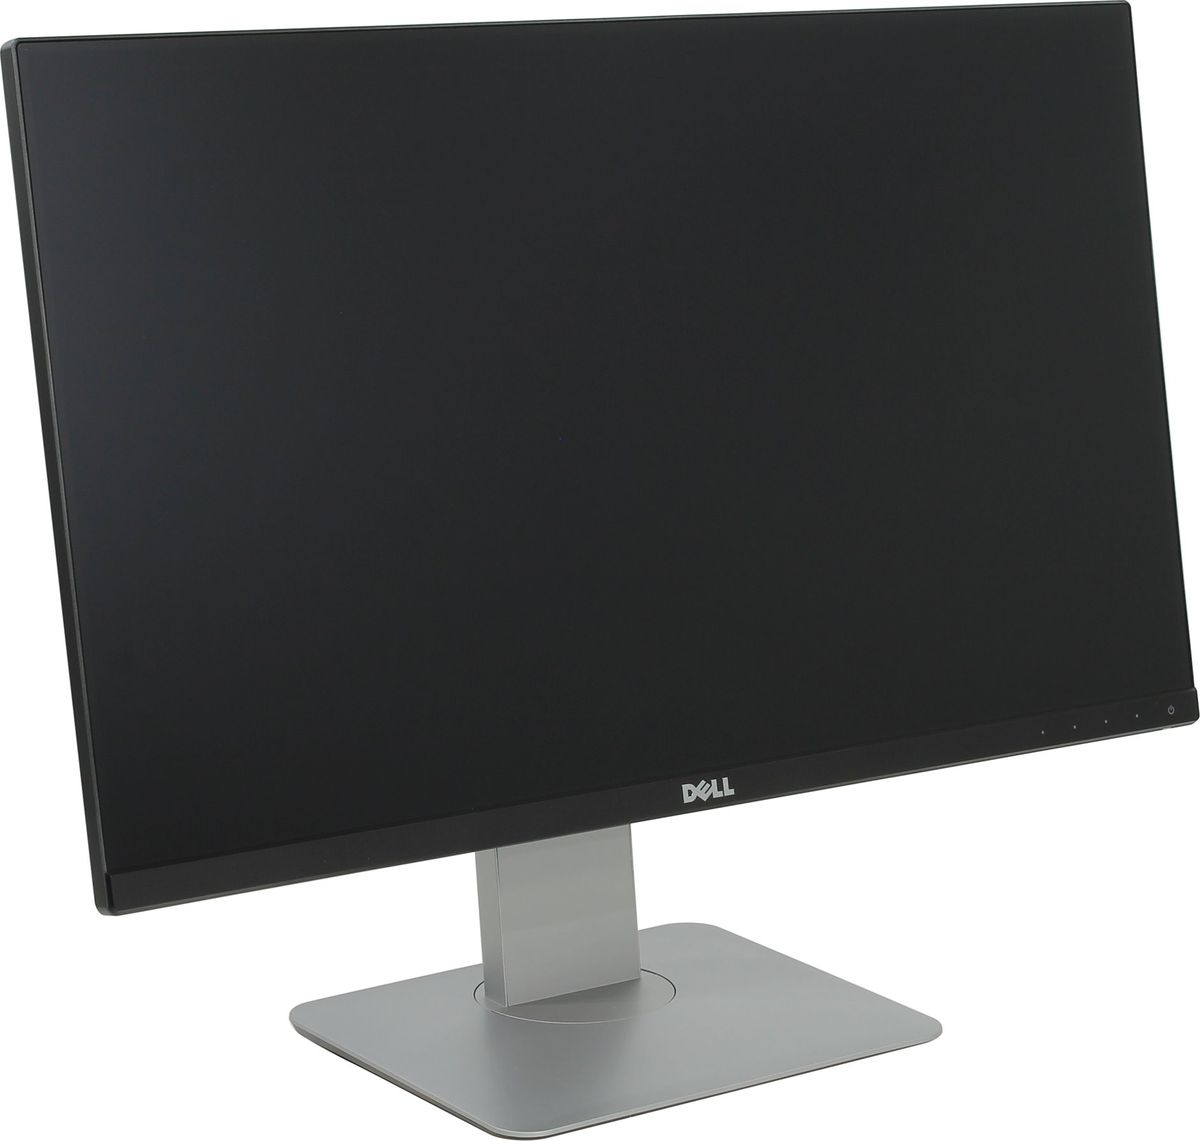 Dell UltraSharp U2417HWi, Black монитор монитор dell up3017 30 черный hdmi 2560x1600